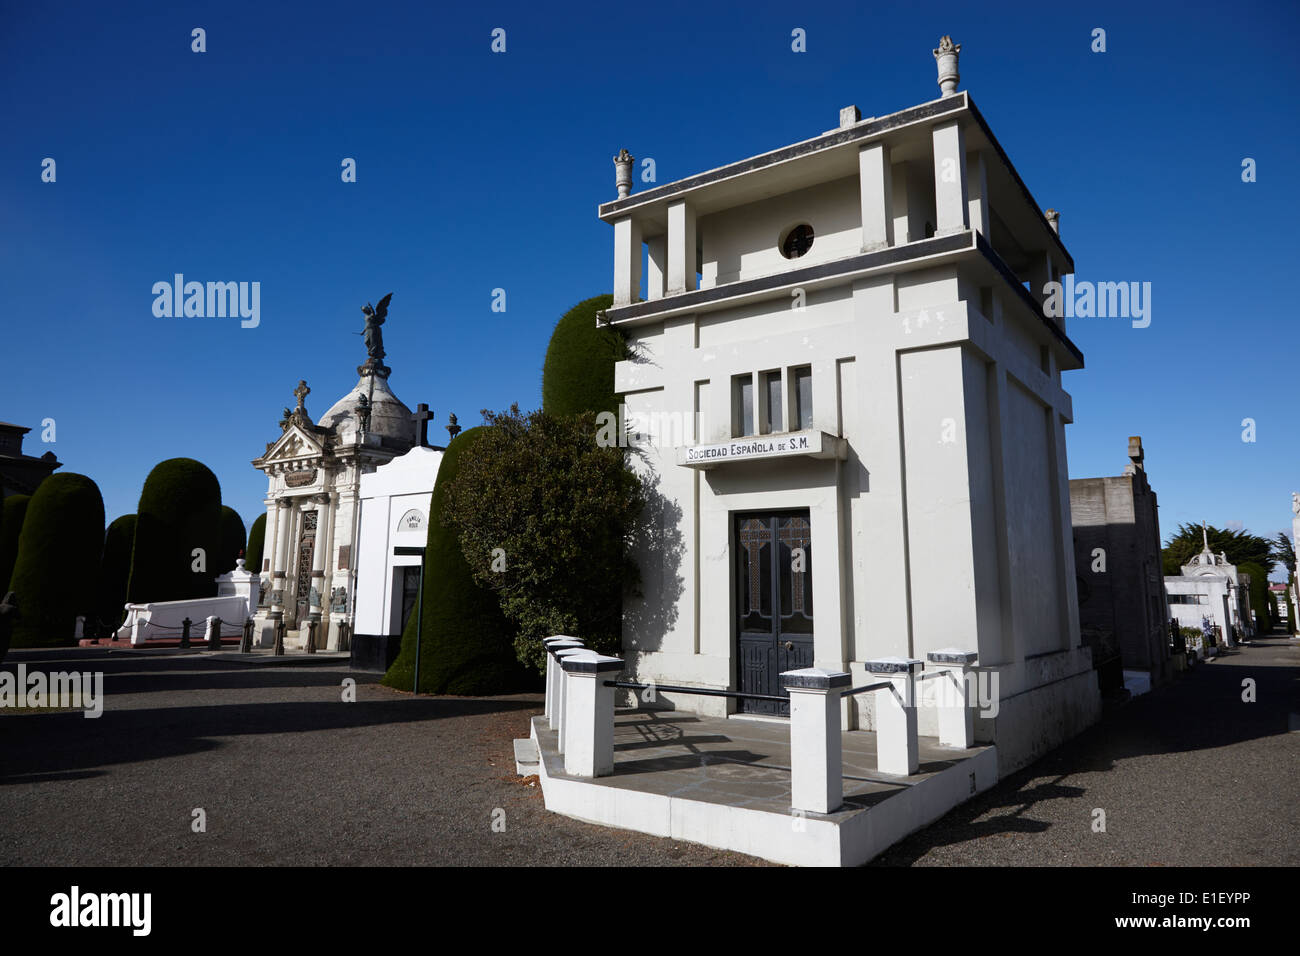 verzierten Mausoleen in der Friedhof von Punta Arenas in Chile Stockbild